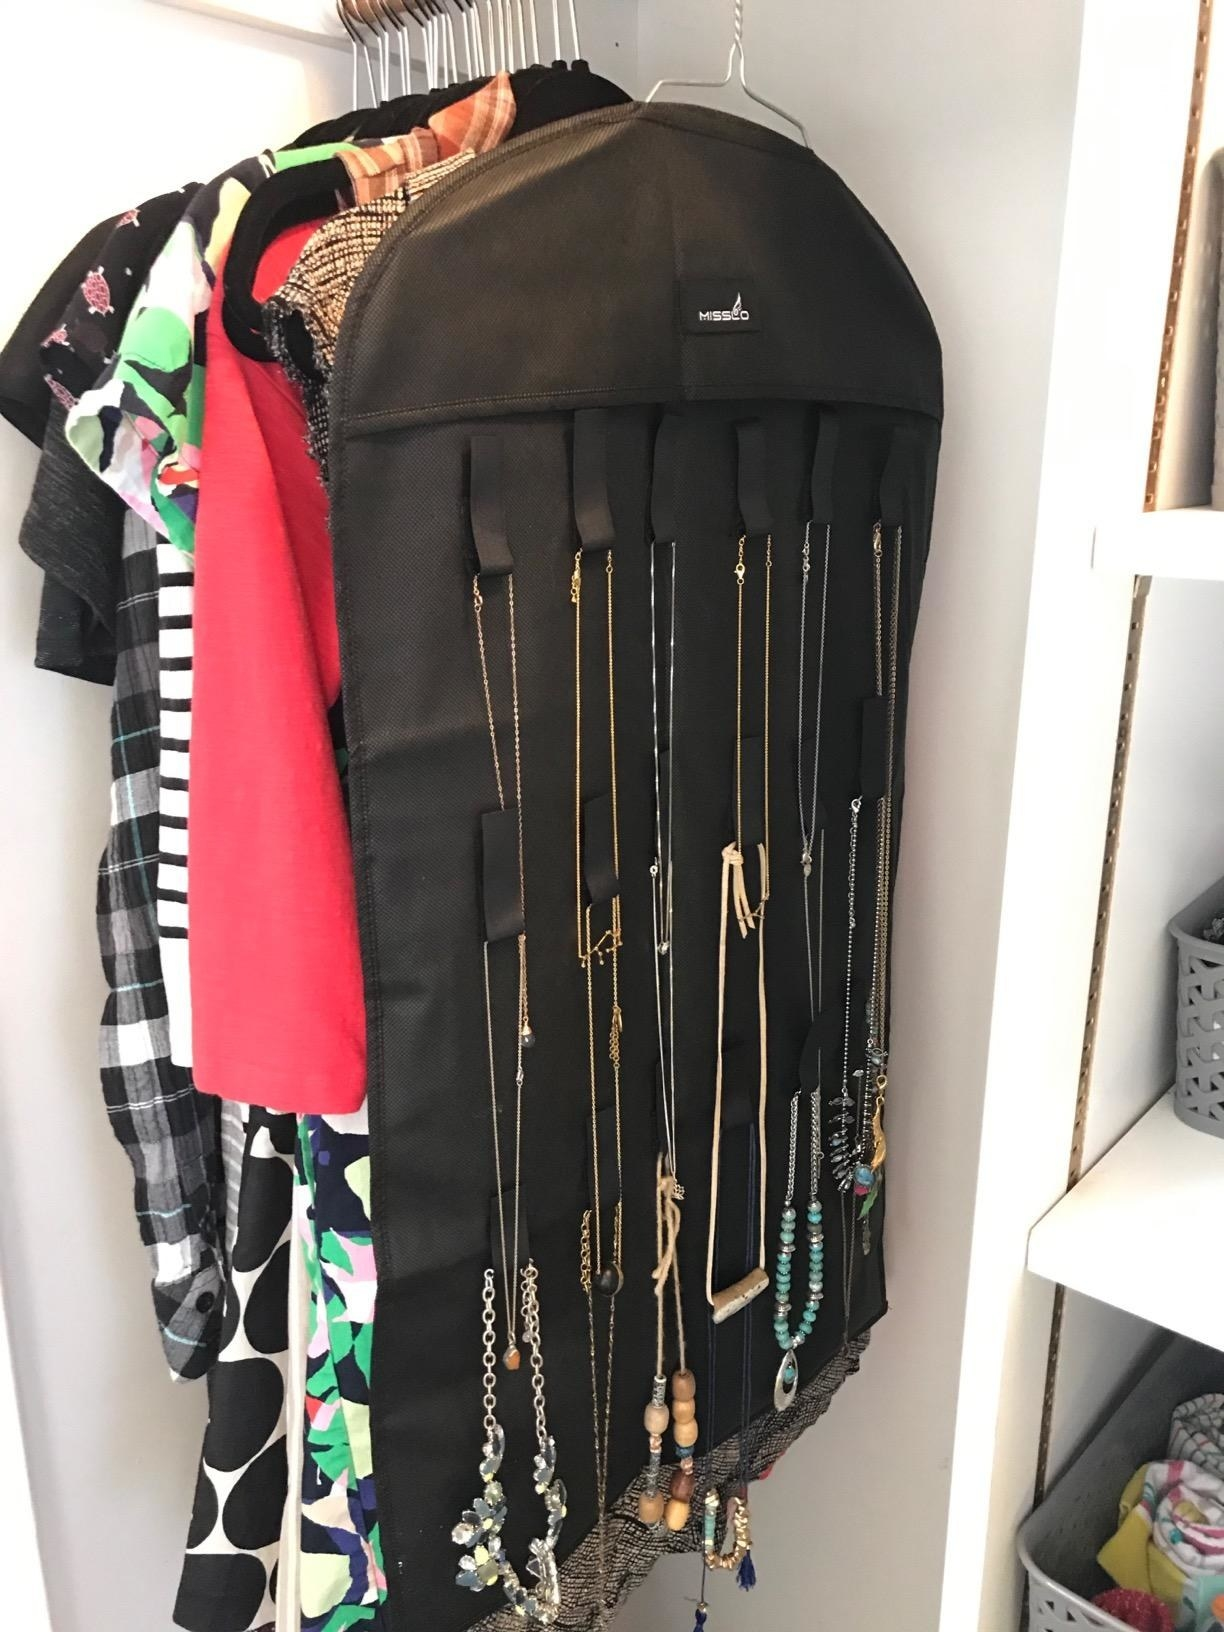 A reviewer showing the rack with necklaces hanging in their closet with their clothes